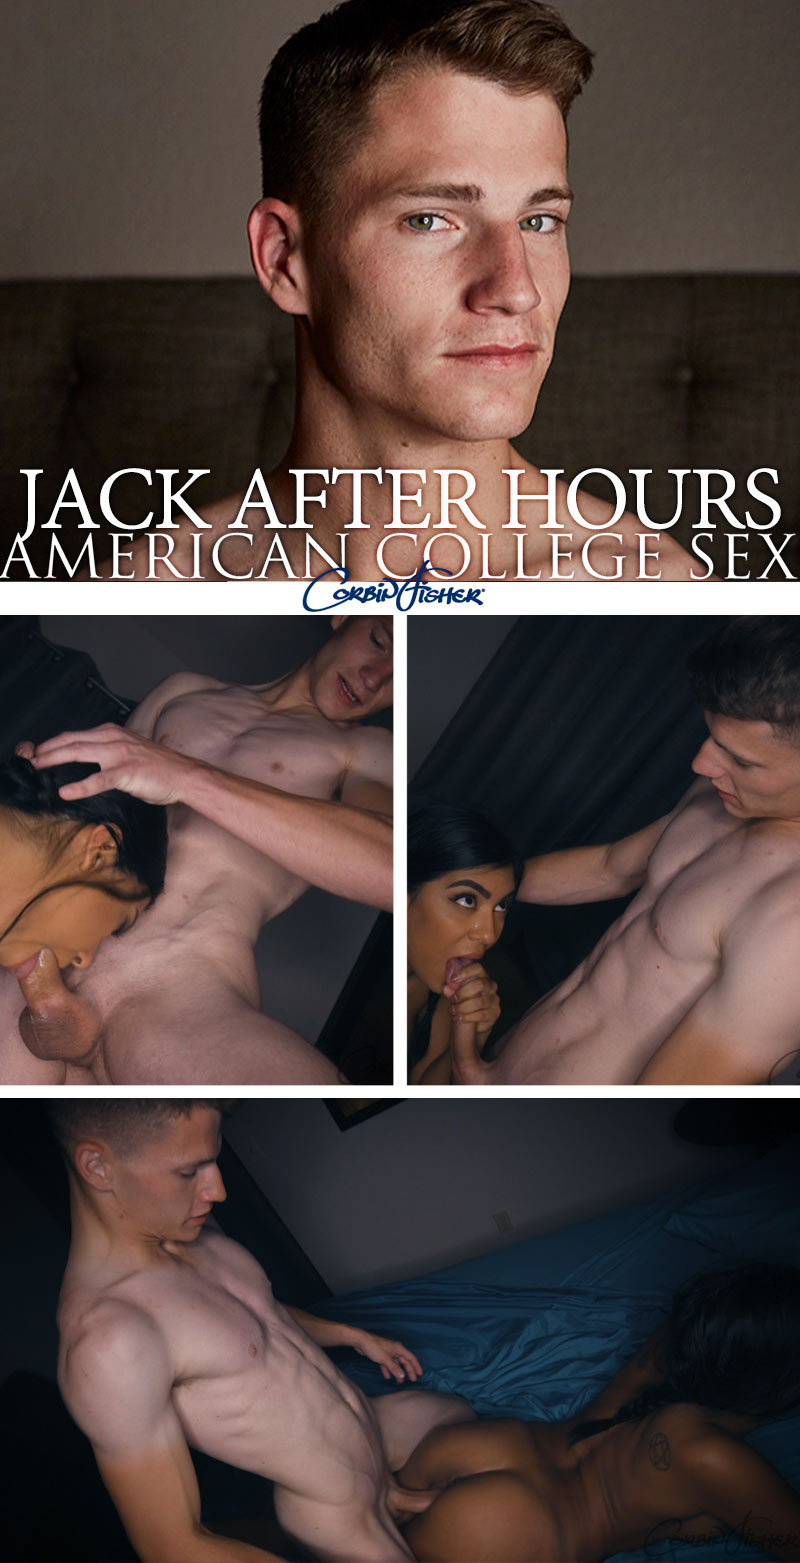 Jack After Hours at AmateurCollegeSex